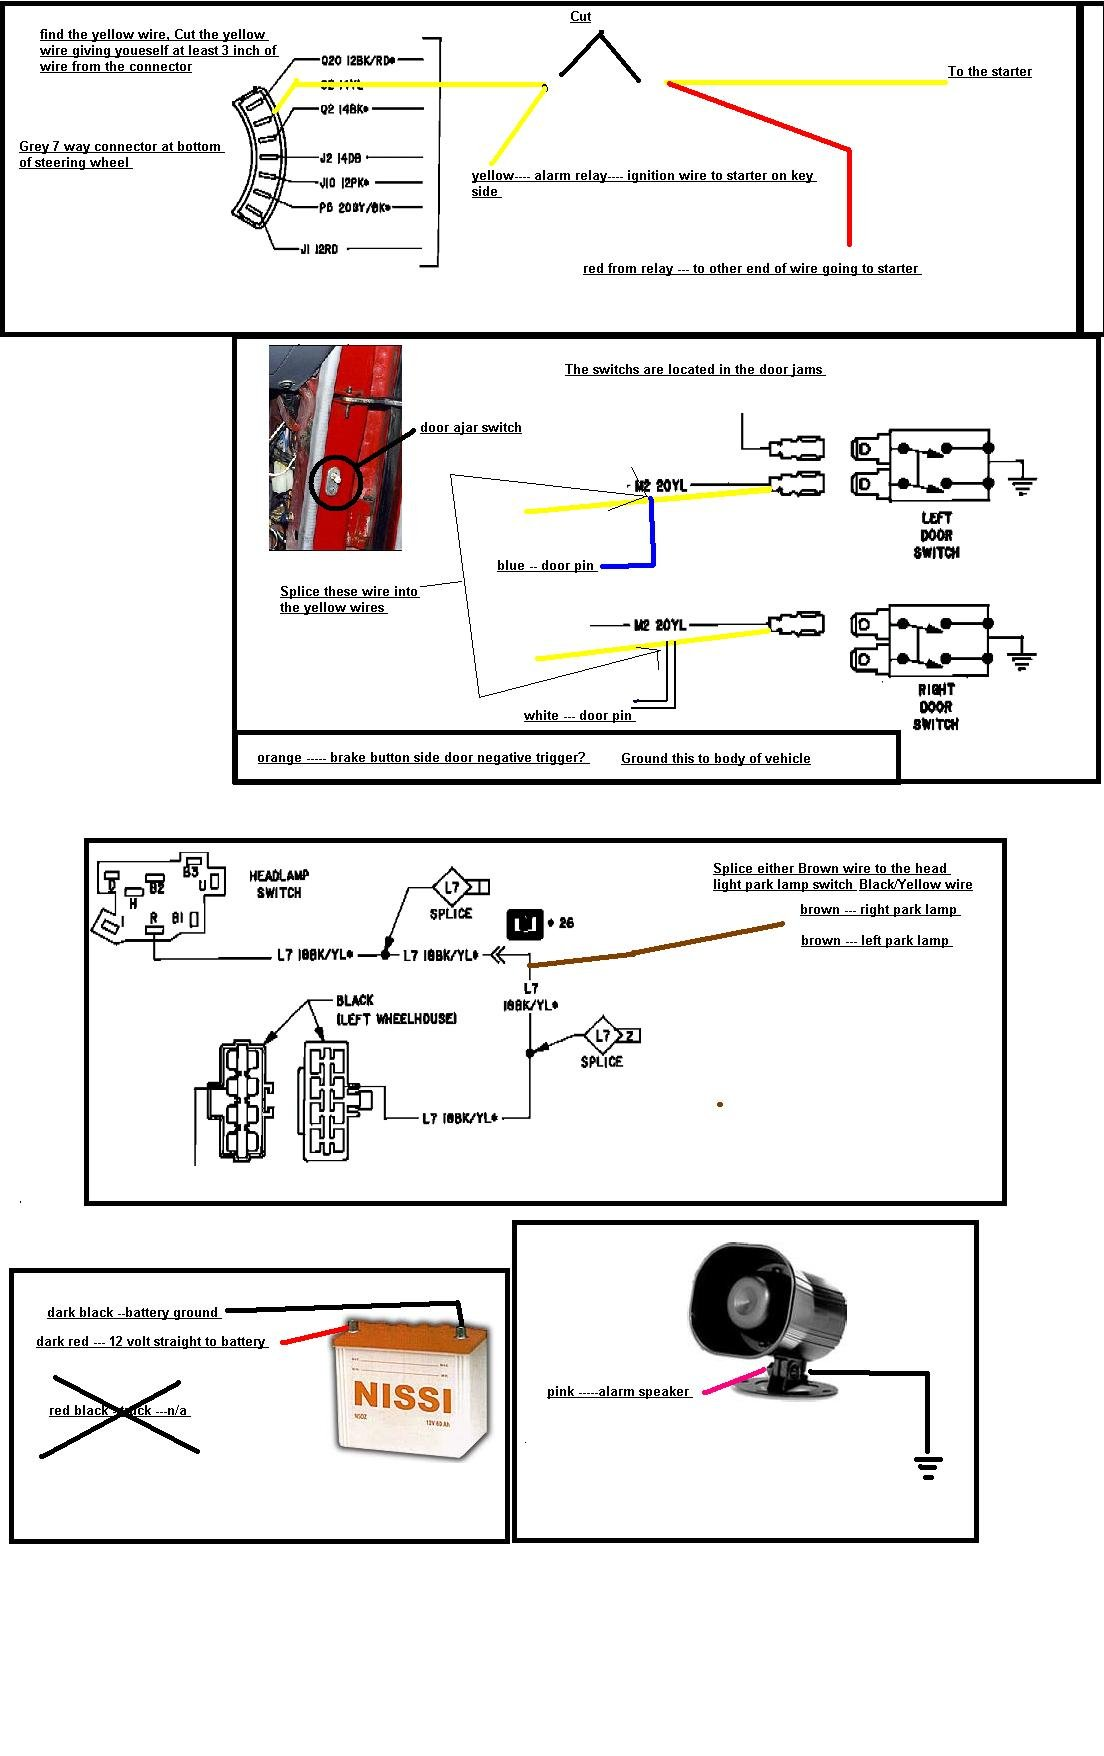 2009-05-13_184813_1986_dodge_250_alarm  Dodge Truck Wiring Diagram on dodge truck remote control, dodge truck meme, dodge truck wire harness, dodge ram 1500 electrical diagrams, dodge truck trailer wiring, dodge truck wiring diagrams2006, dodge truck ford, dodge truck alternator wiring, dodge truck electrical diagrams, dodge truck engine swap, dodge 3.7 engine diagram, 1936 buick engine diagram, dodge ram wiring harness, dodge truck bumpers, dodge sprinter wiring-diagram, dodge wiring 1990, 2013 dodge ram fuse box diagram, dodge cummins wiring-diagram, 1994 dodge ram electrical diagram, dodge truck maintenance,